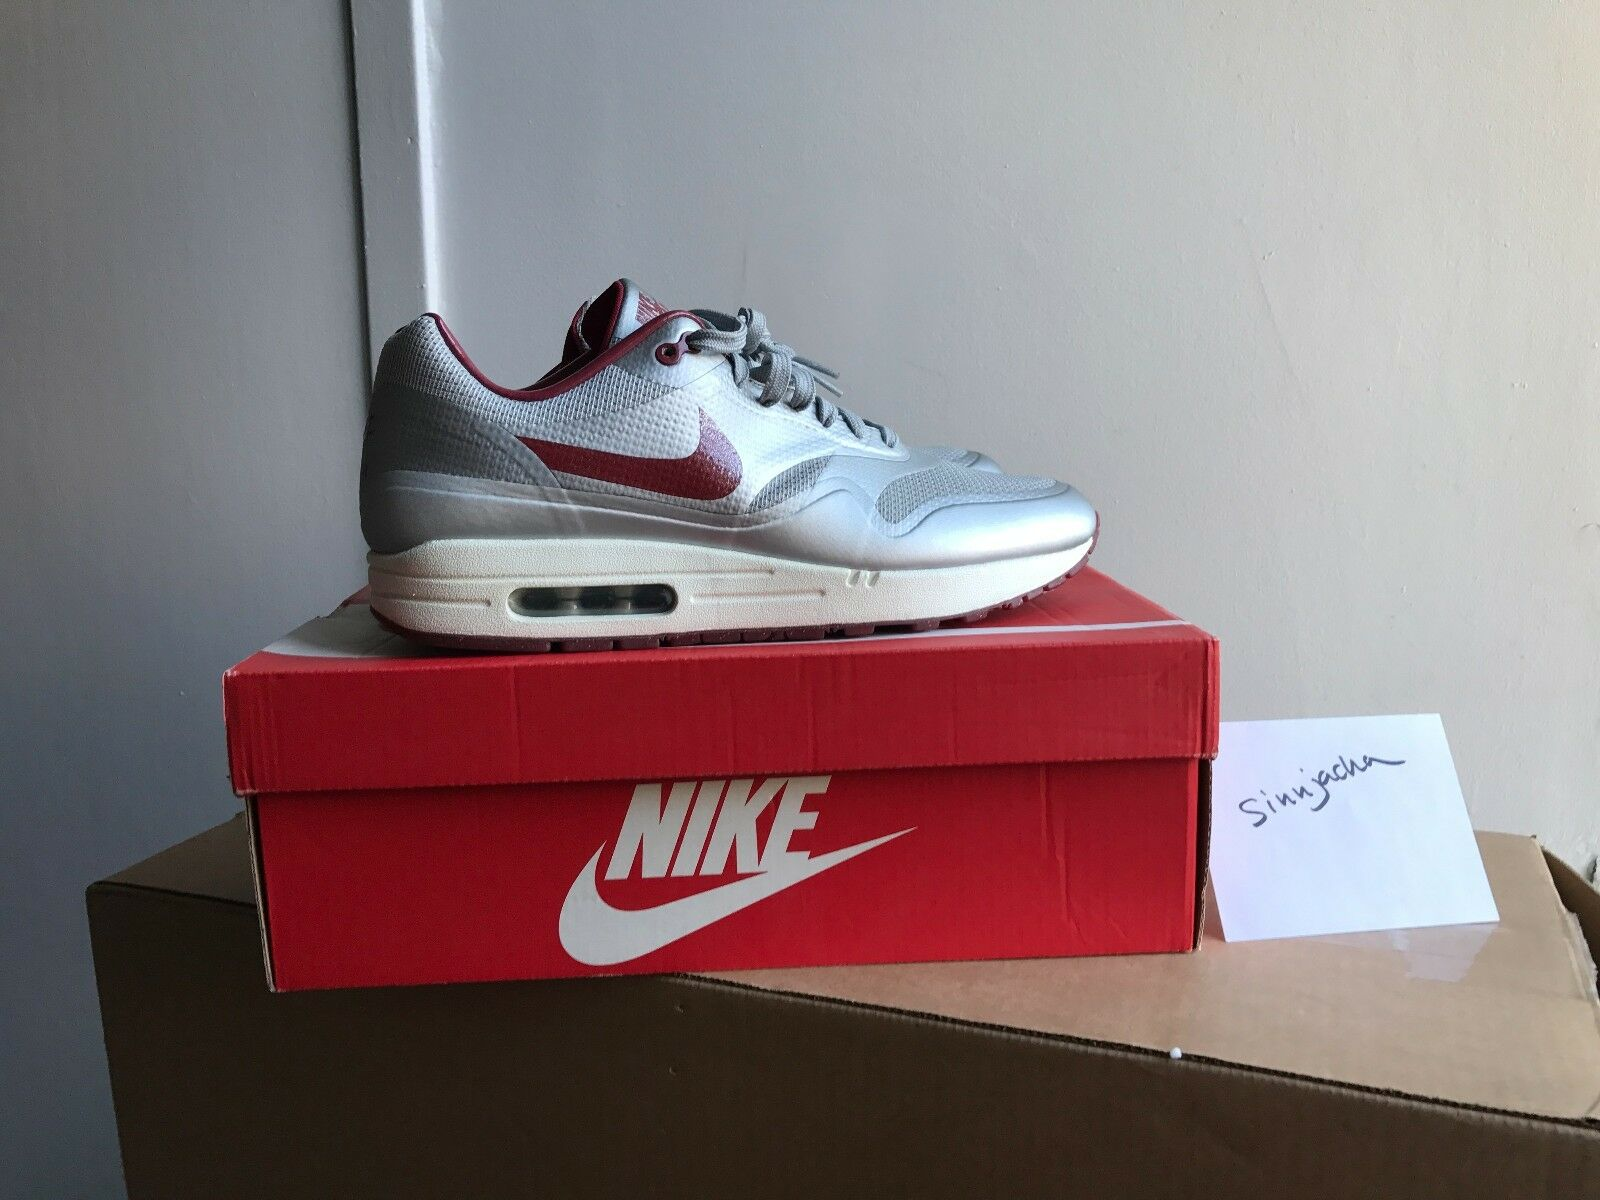 quickstrike nike air (argent max 1 hyperfuse 10,5 633087 006 (argent air / taille de rouge profond) 99c29a